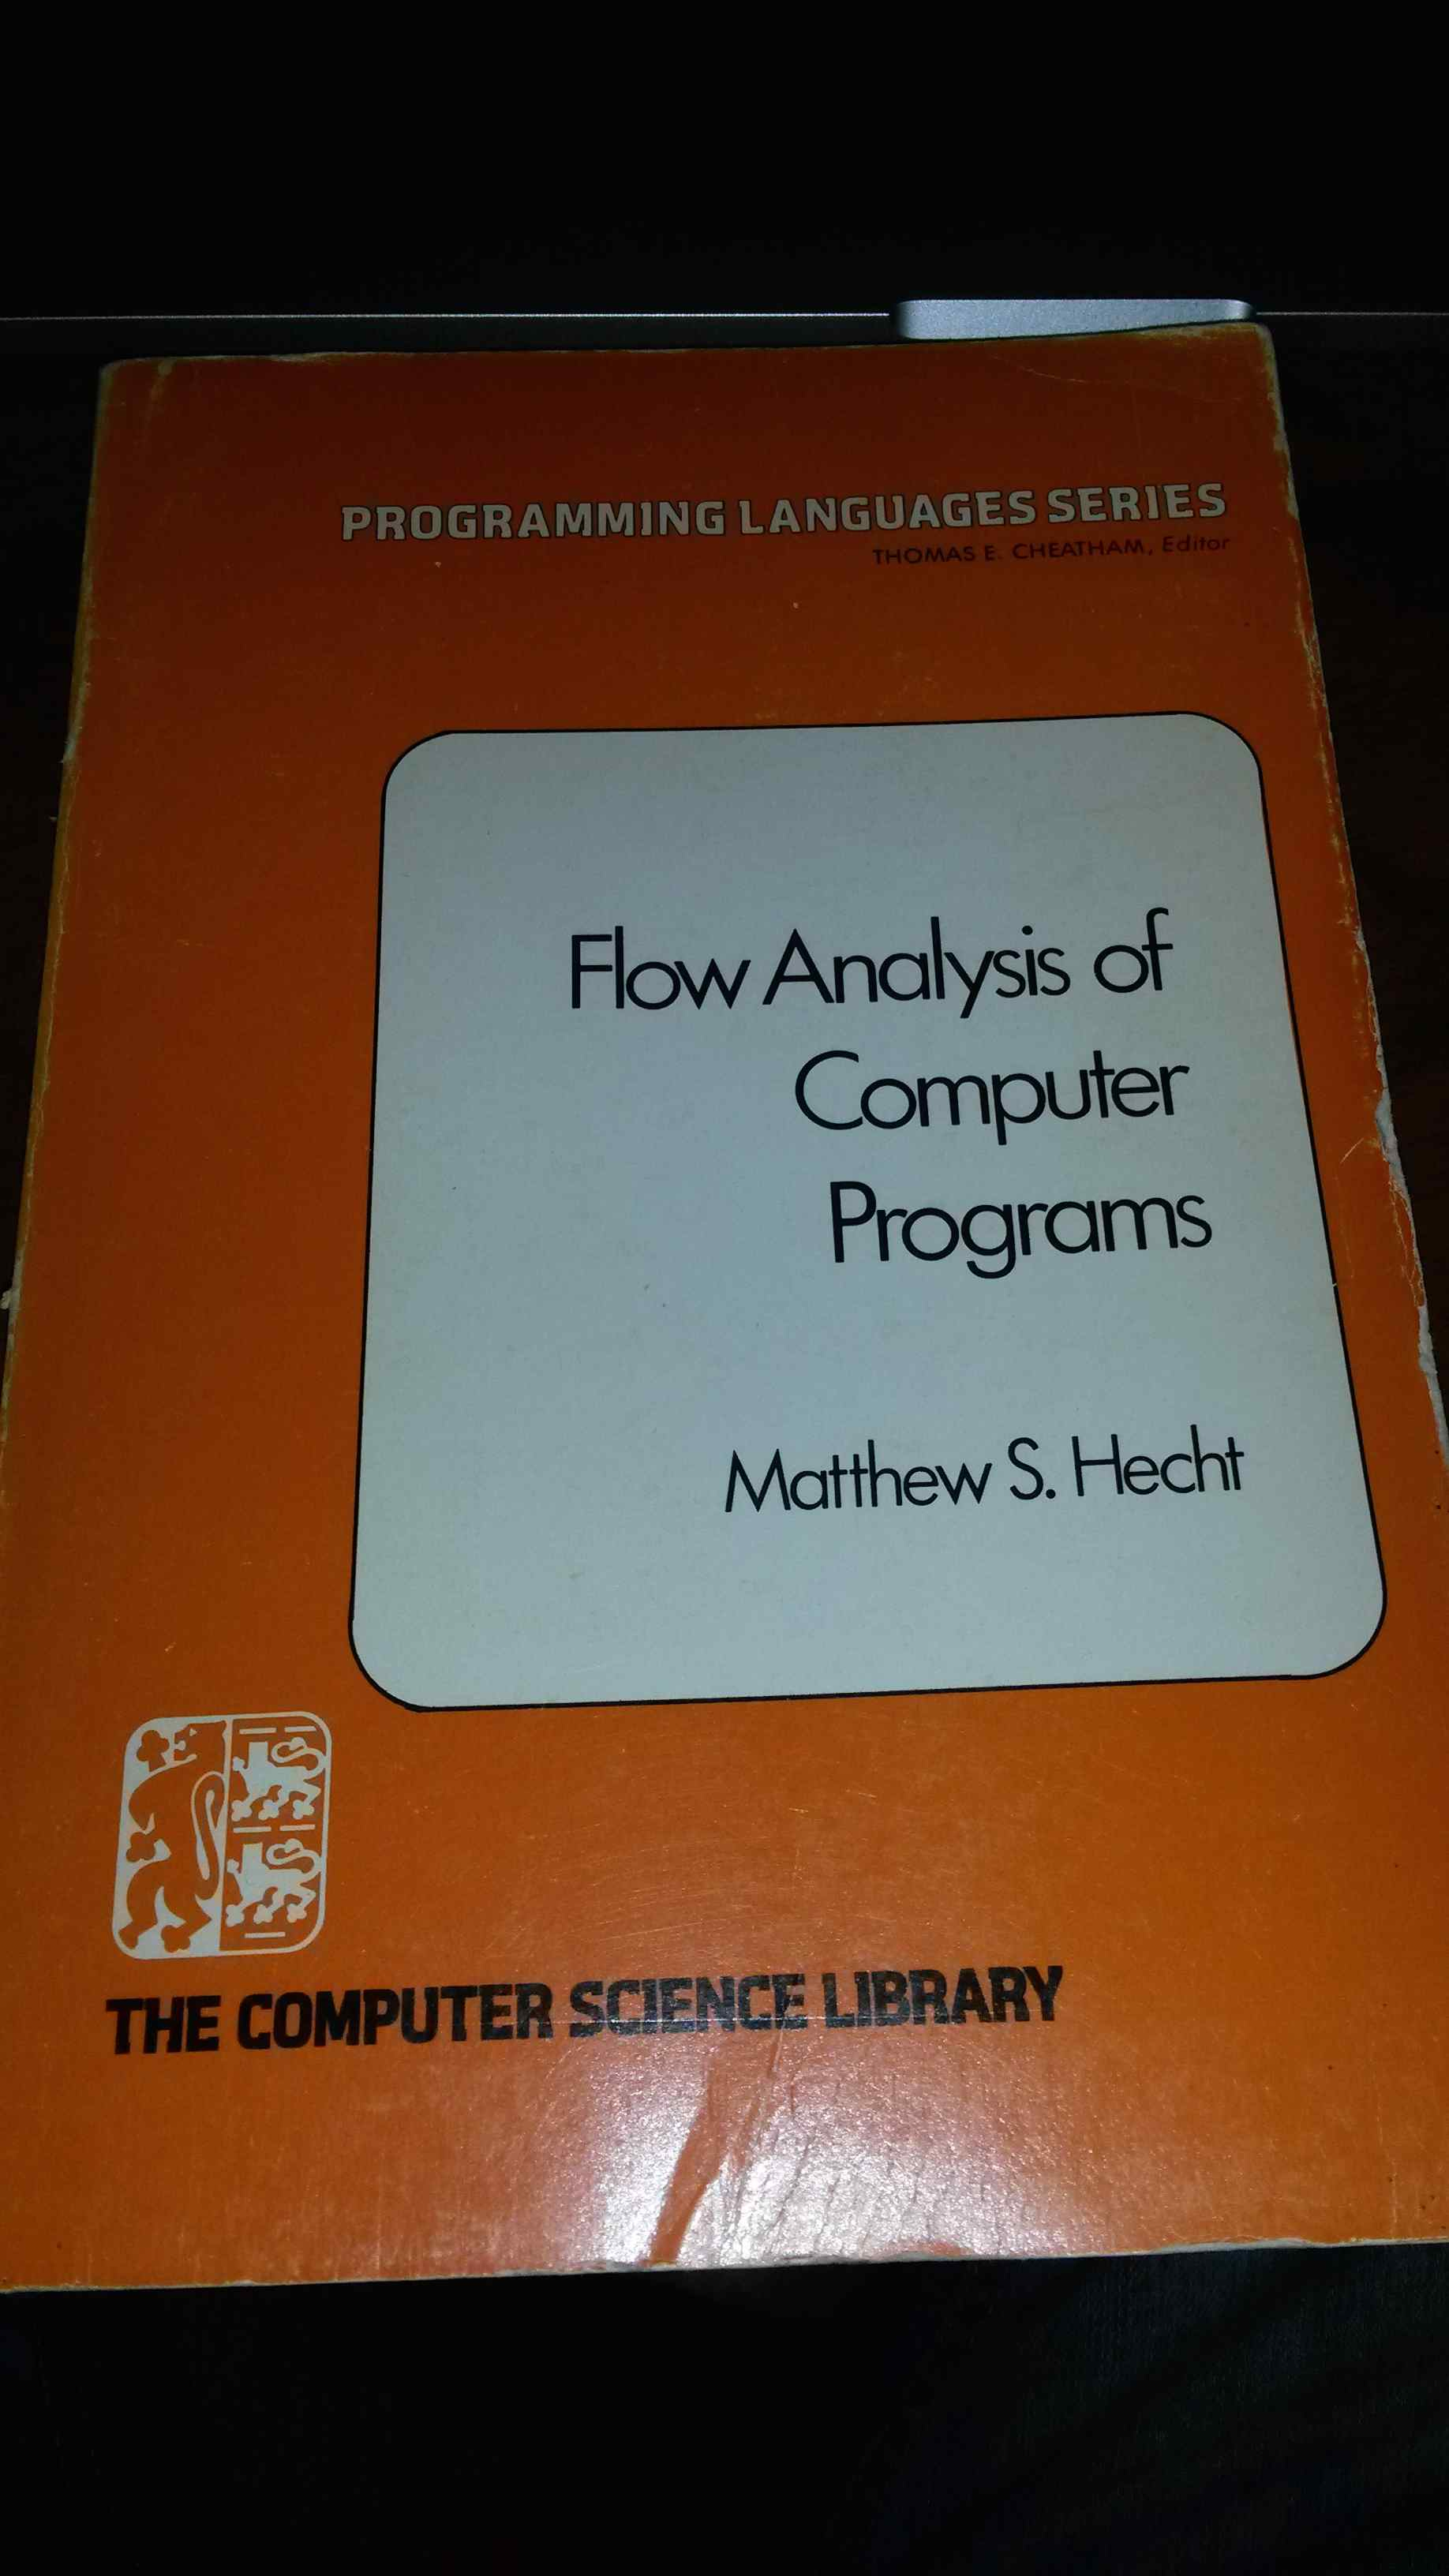 Flow Analysis of Computer Programs